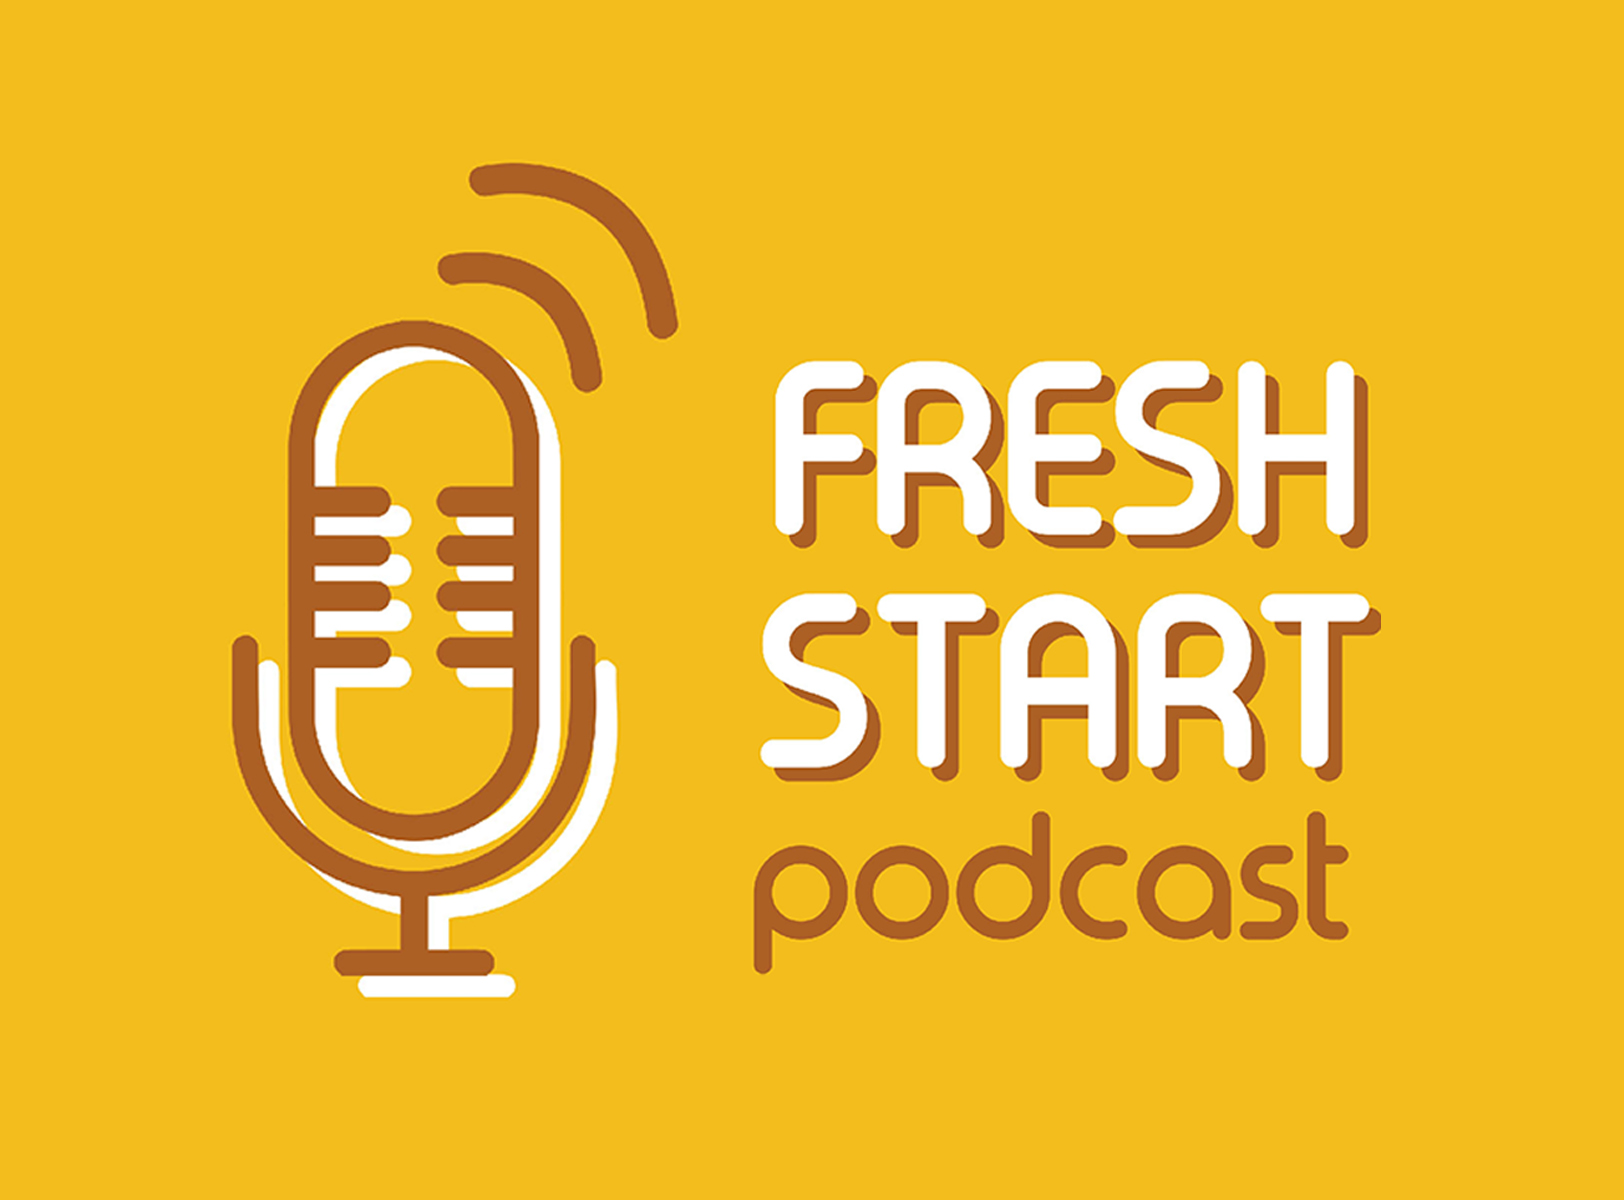 Fresh Start: Podcast News (6/6/2019 Thu.)